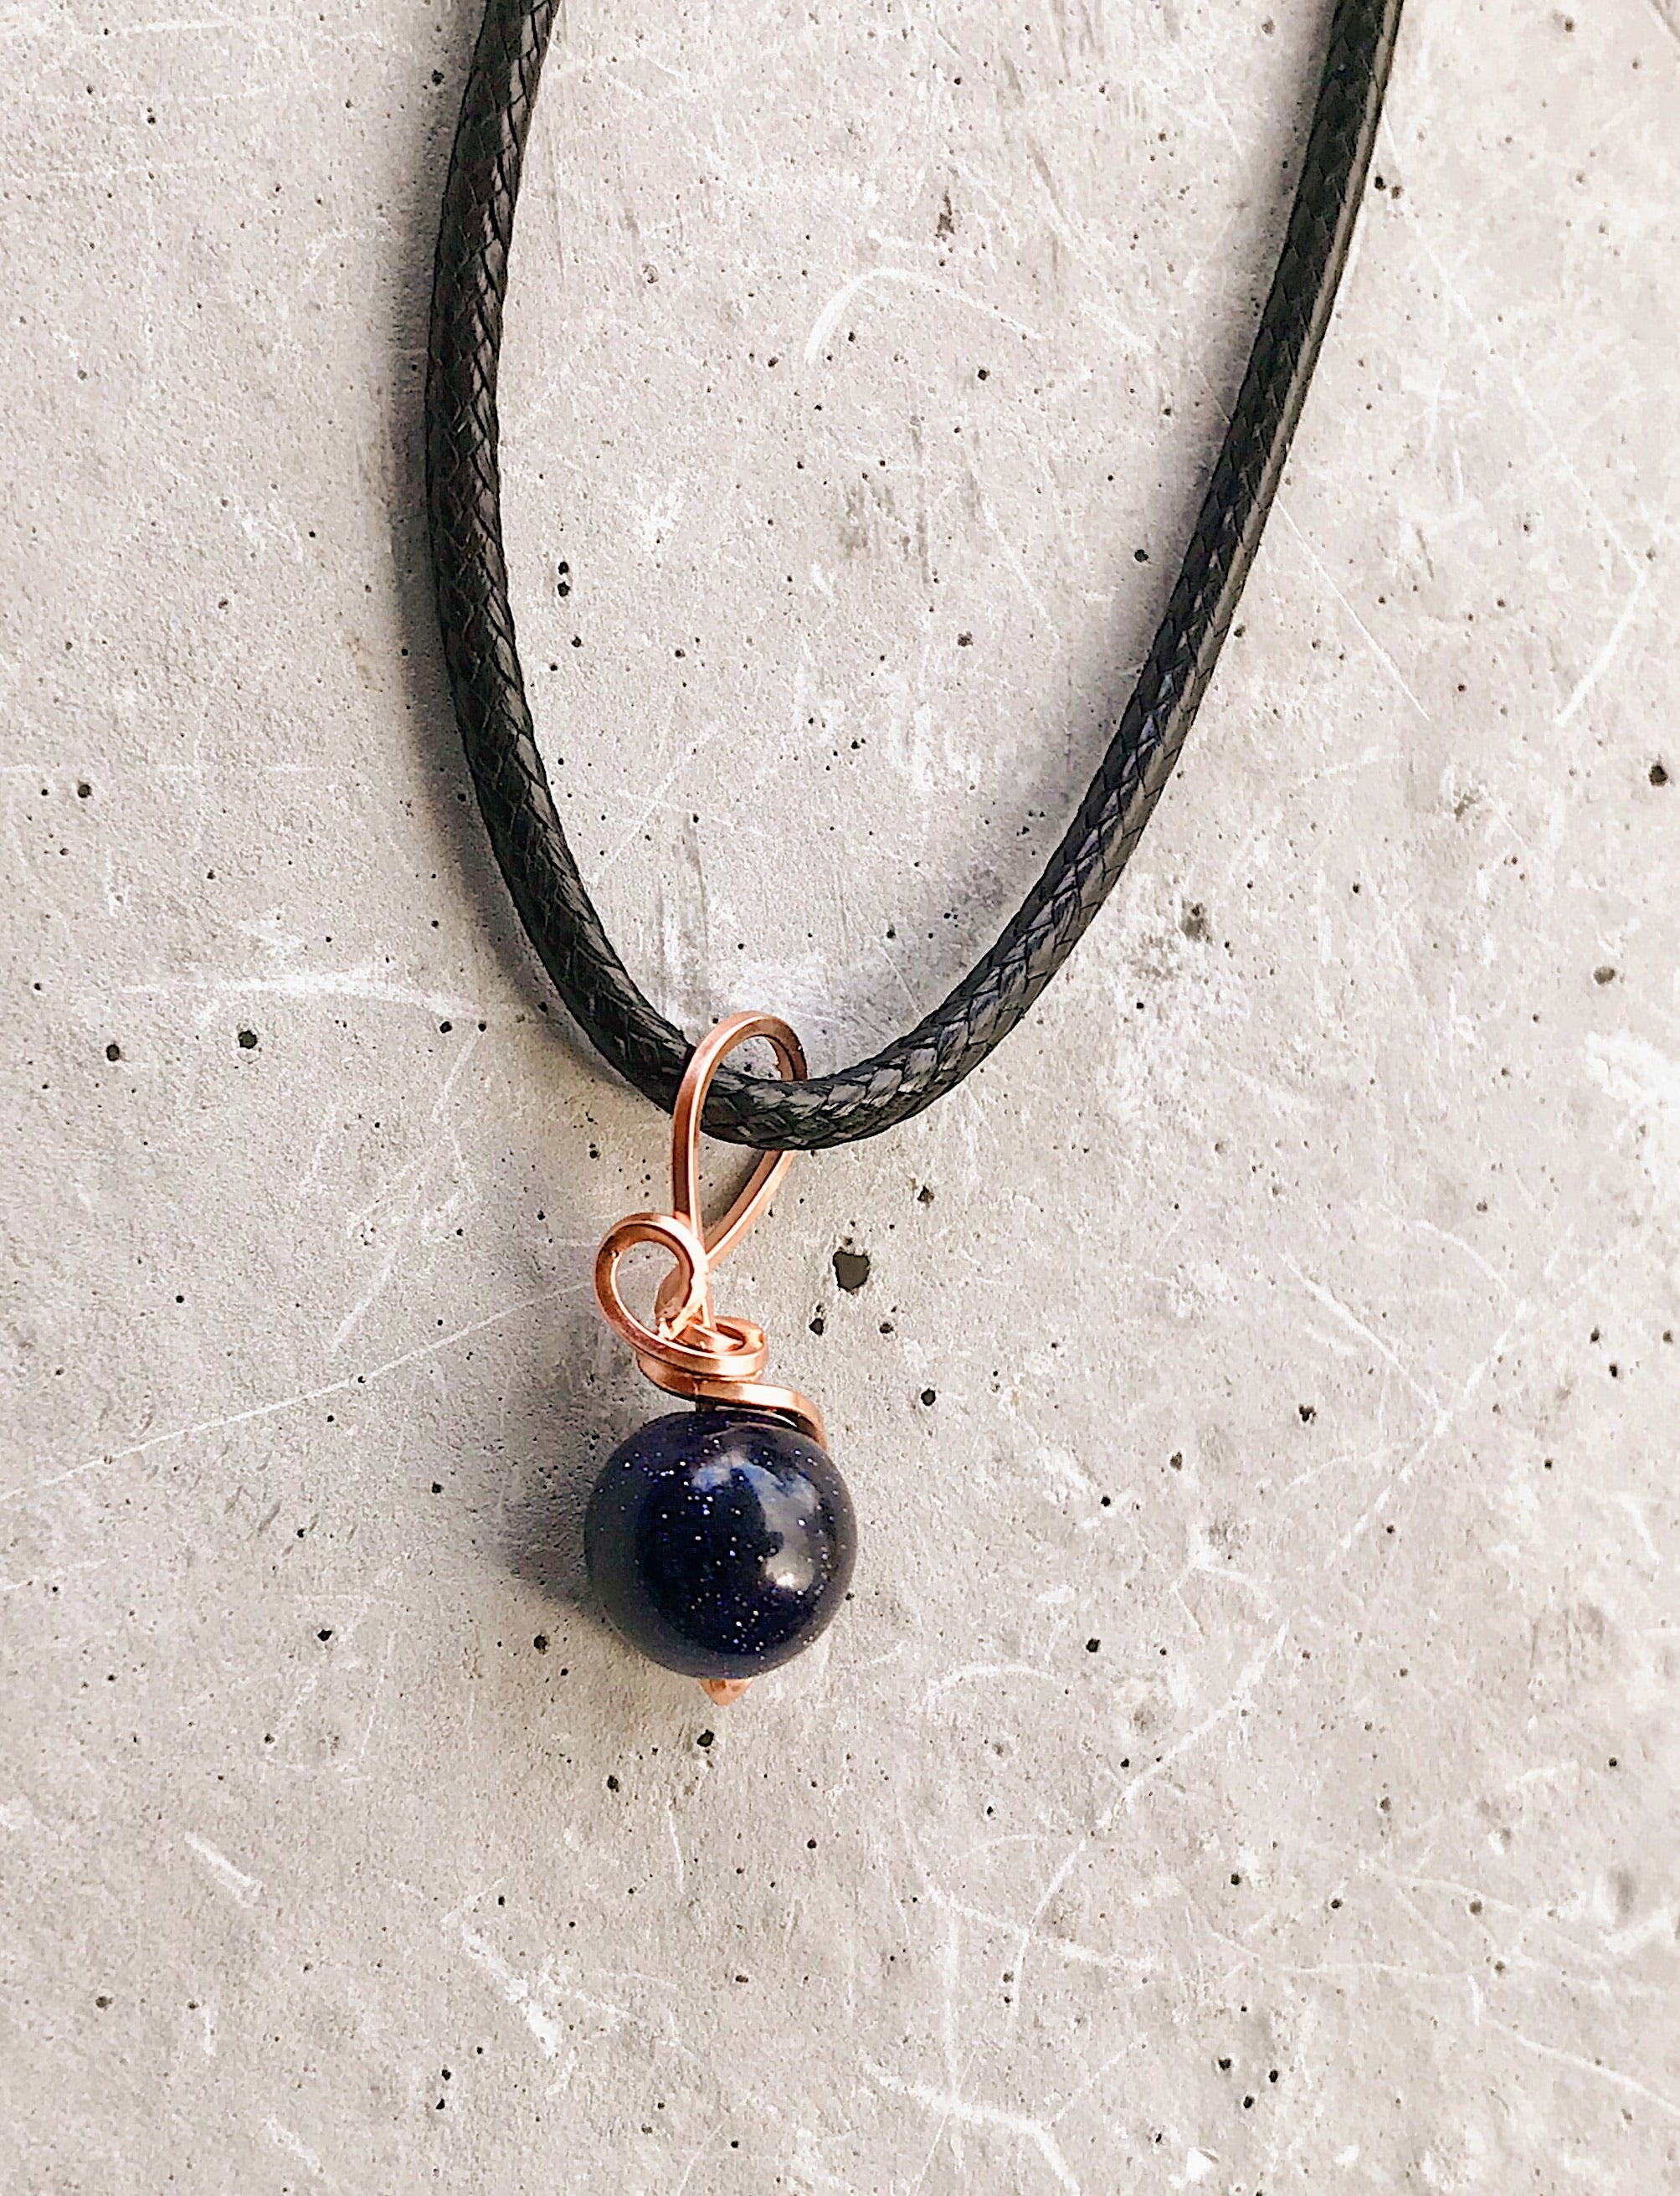 Blue Goldstone charm pendant In 14K rose gold filled wire